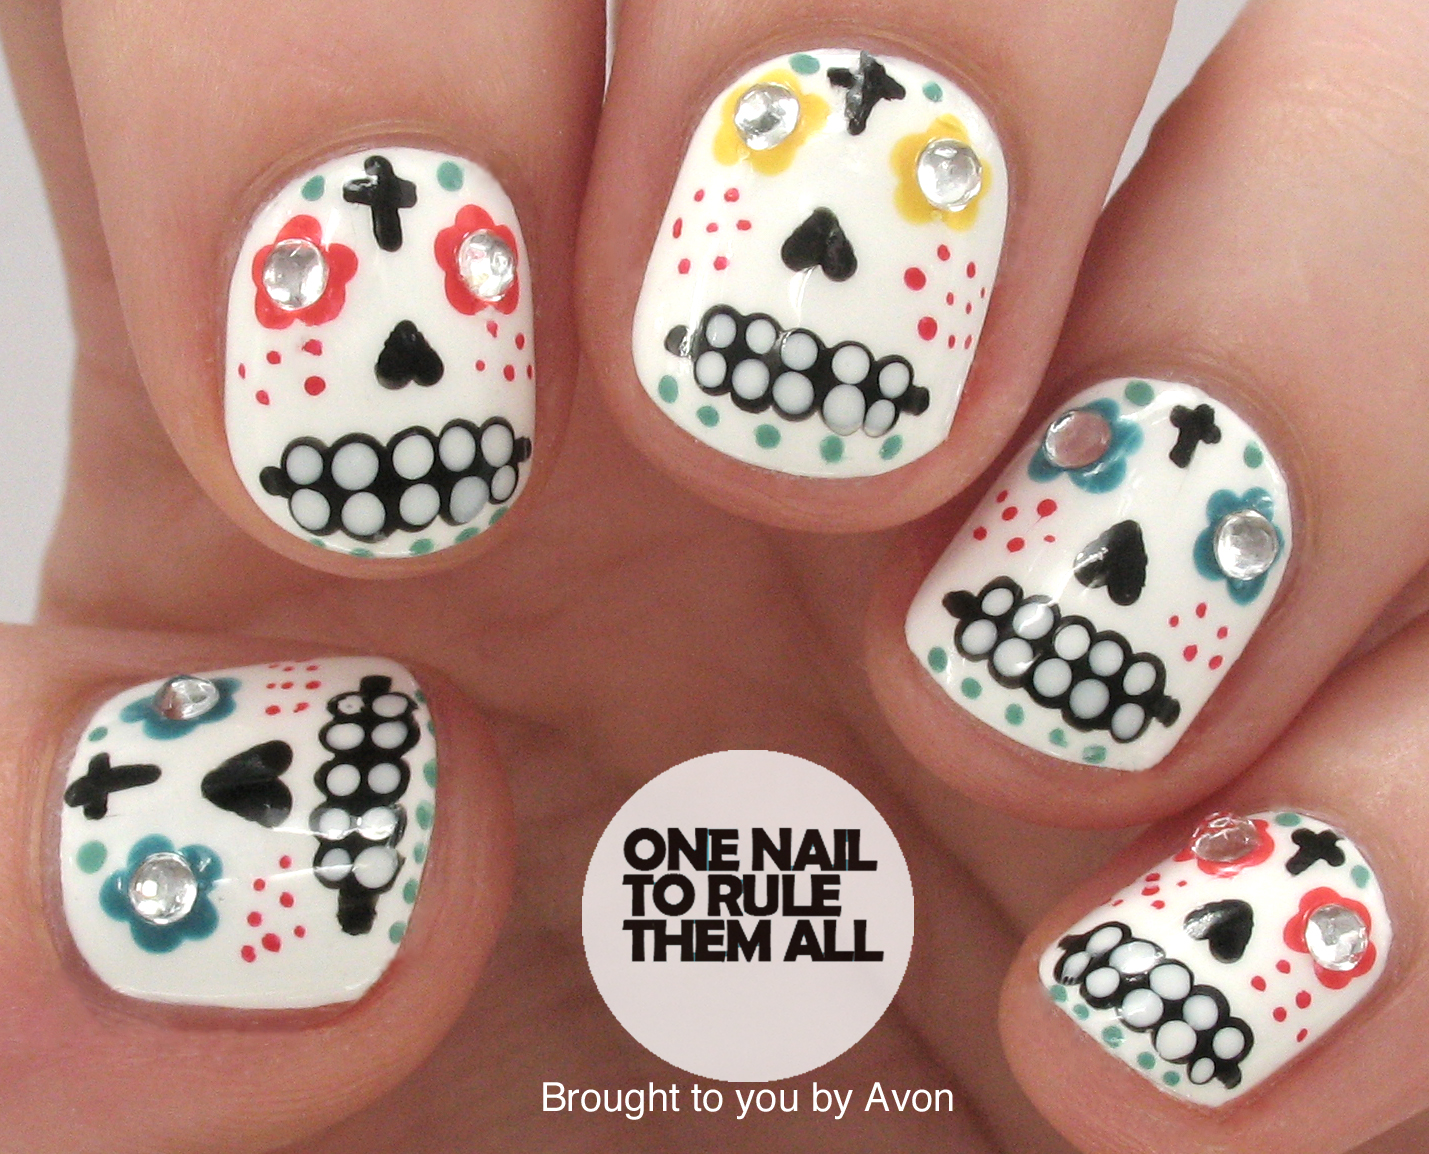 One Nail To Rule Them All Sugar Skulls Nail Art For Avon